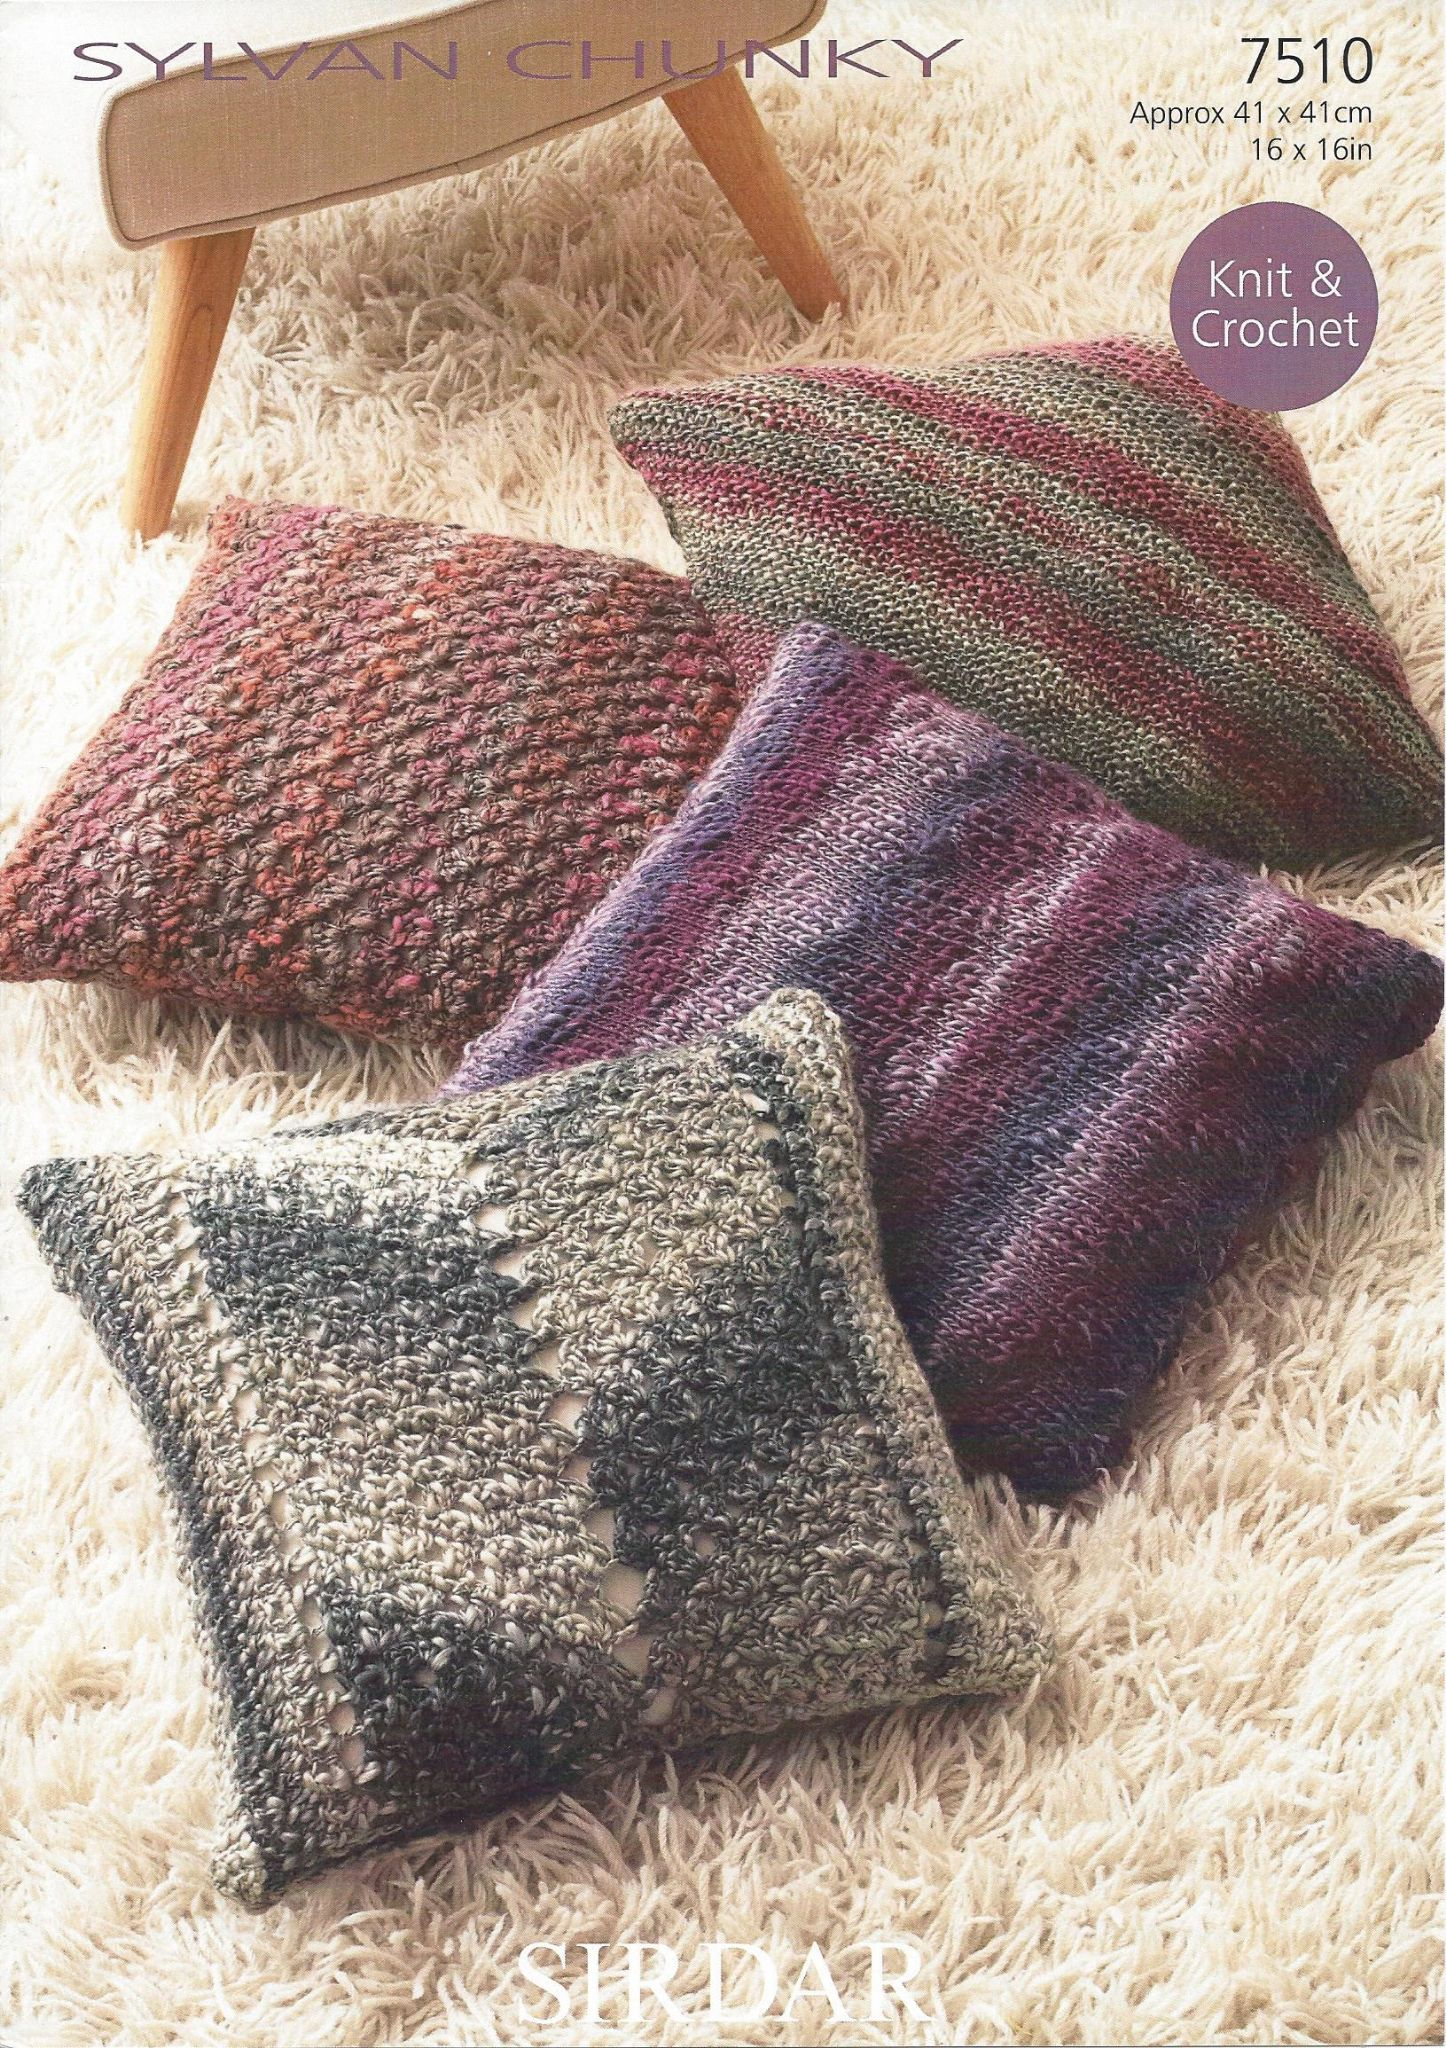 Machine Knitting Patterns For Babies : Sirdar Sylvan Chunky - 7510 Cushions Knitting & Crochet Pattern